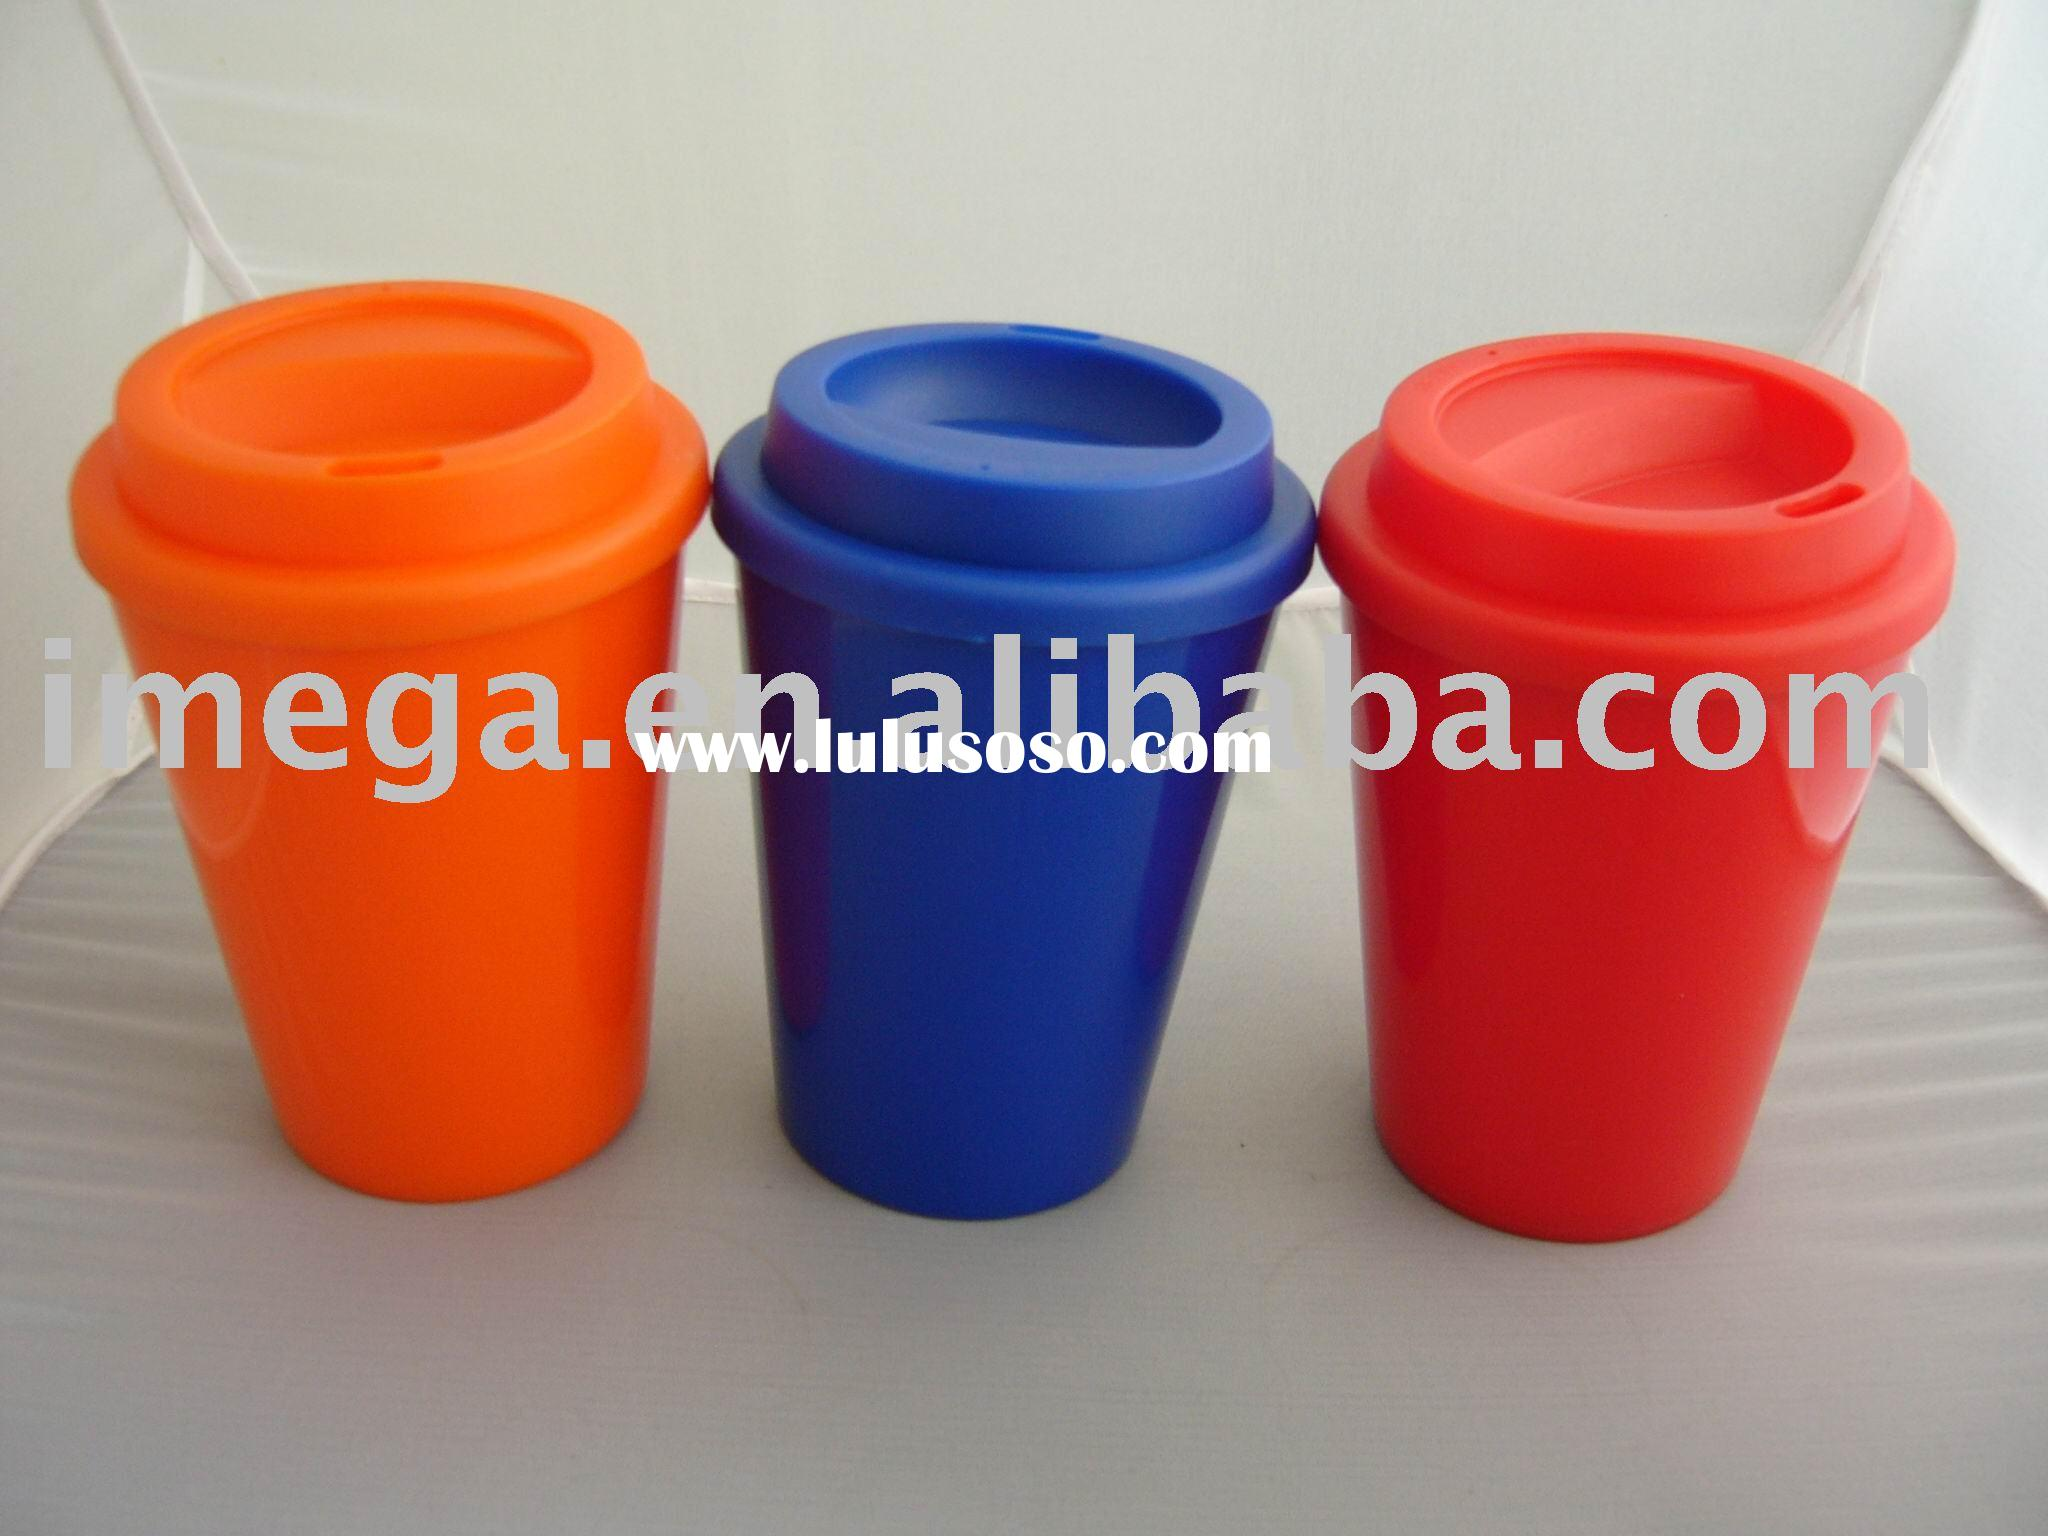 12 OZ Double Wall Plastic Coffee Mug